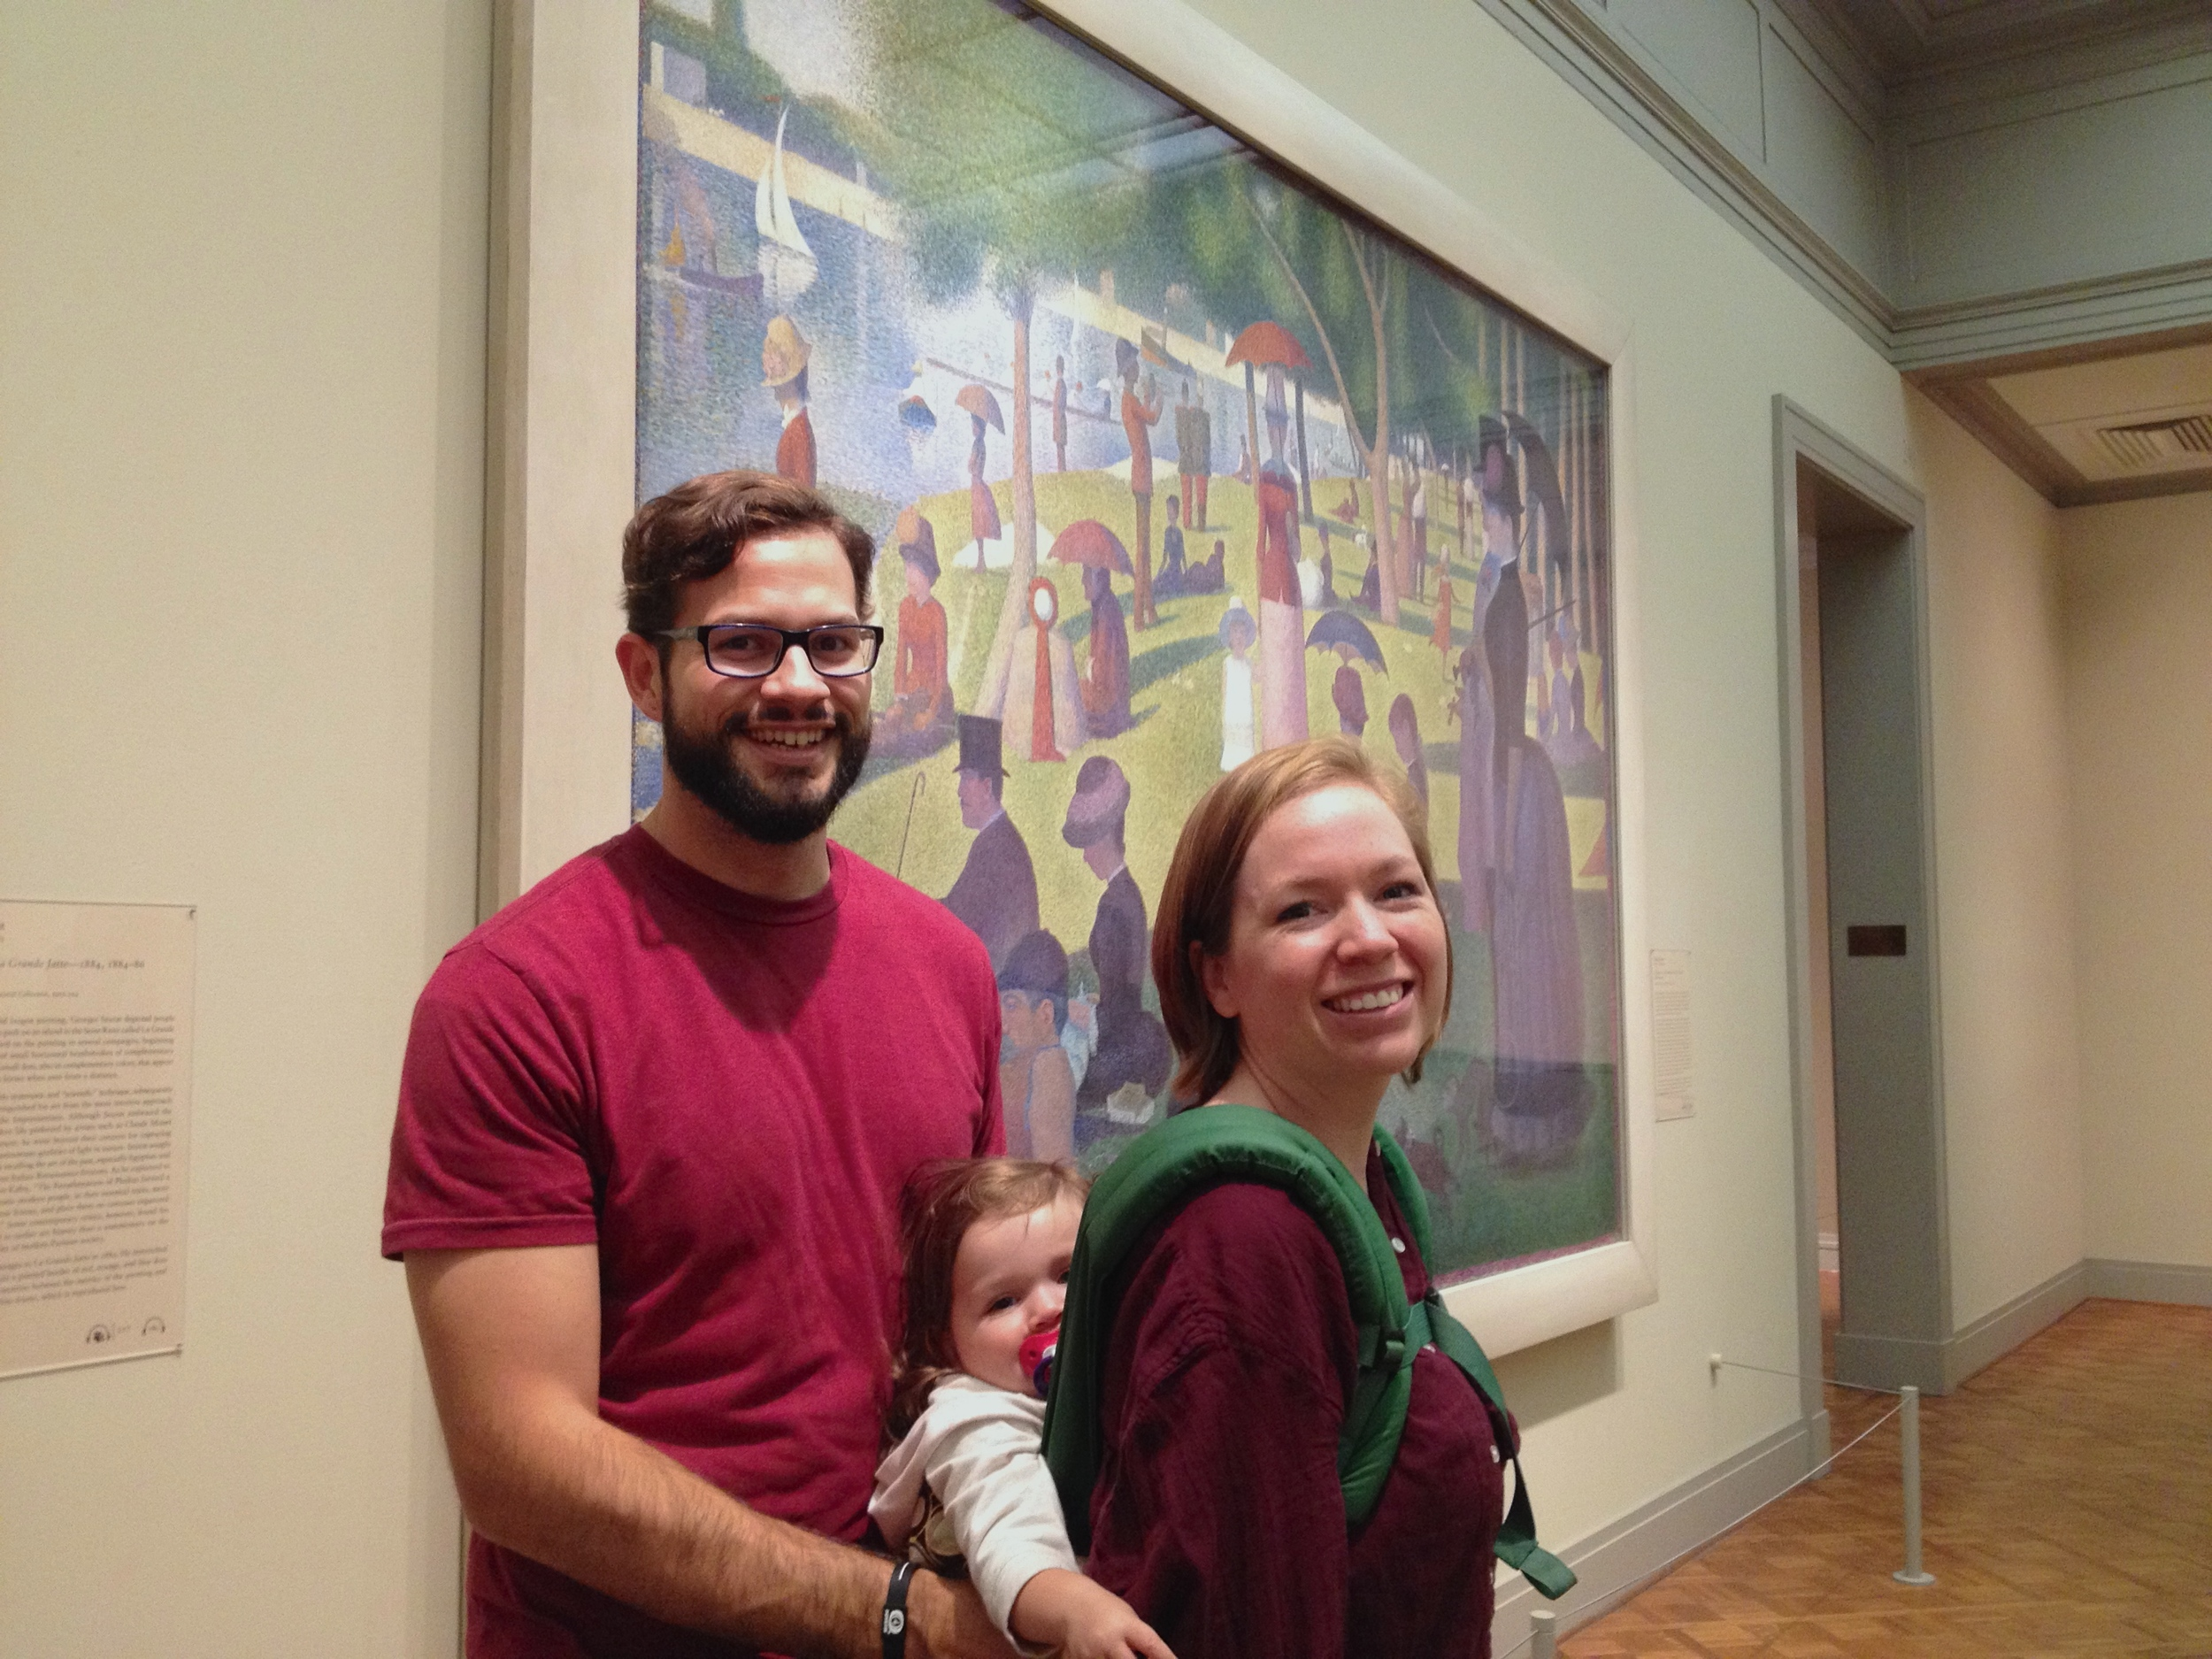 The Art Institute of Chicago has one of the best impressionist collections I've ever seen. My one regret is not spending very much time in that wing. Check out Seurat's famous  A Sunday afternoon on the Island of La Grande Jatte.